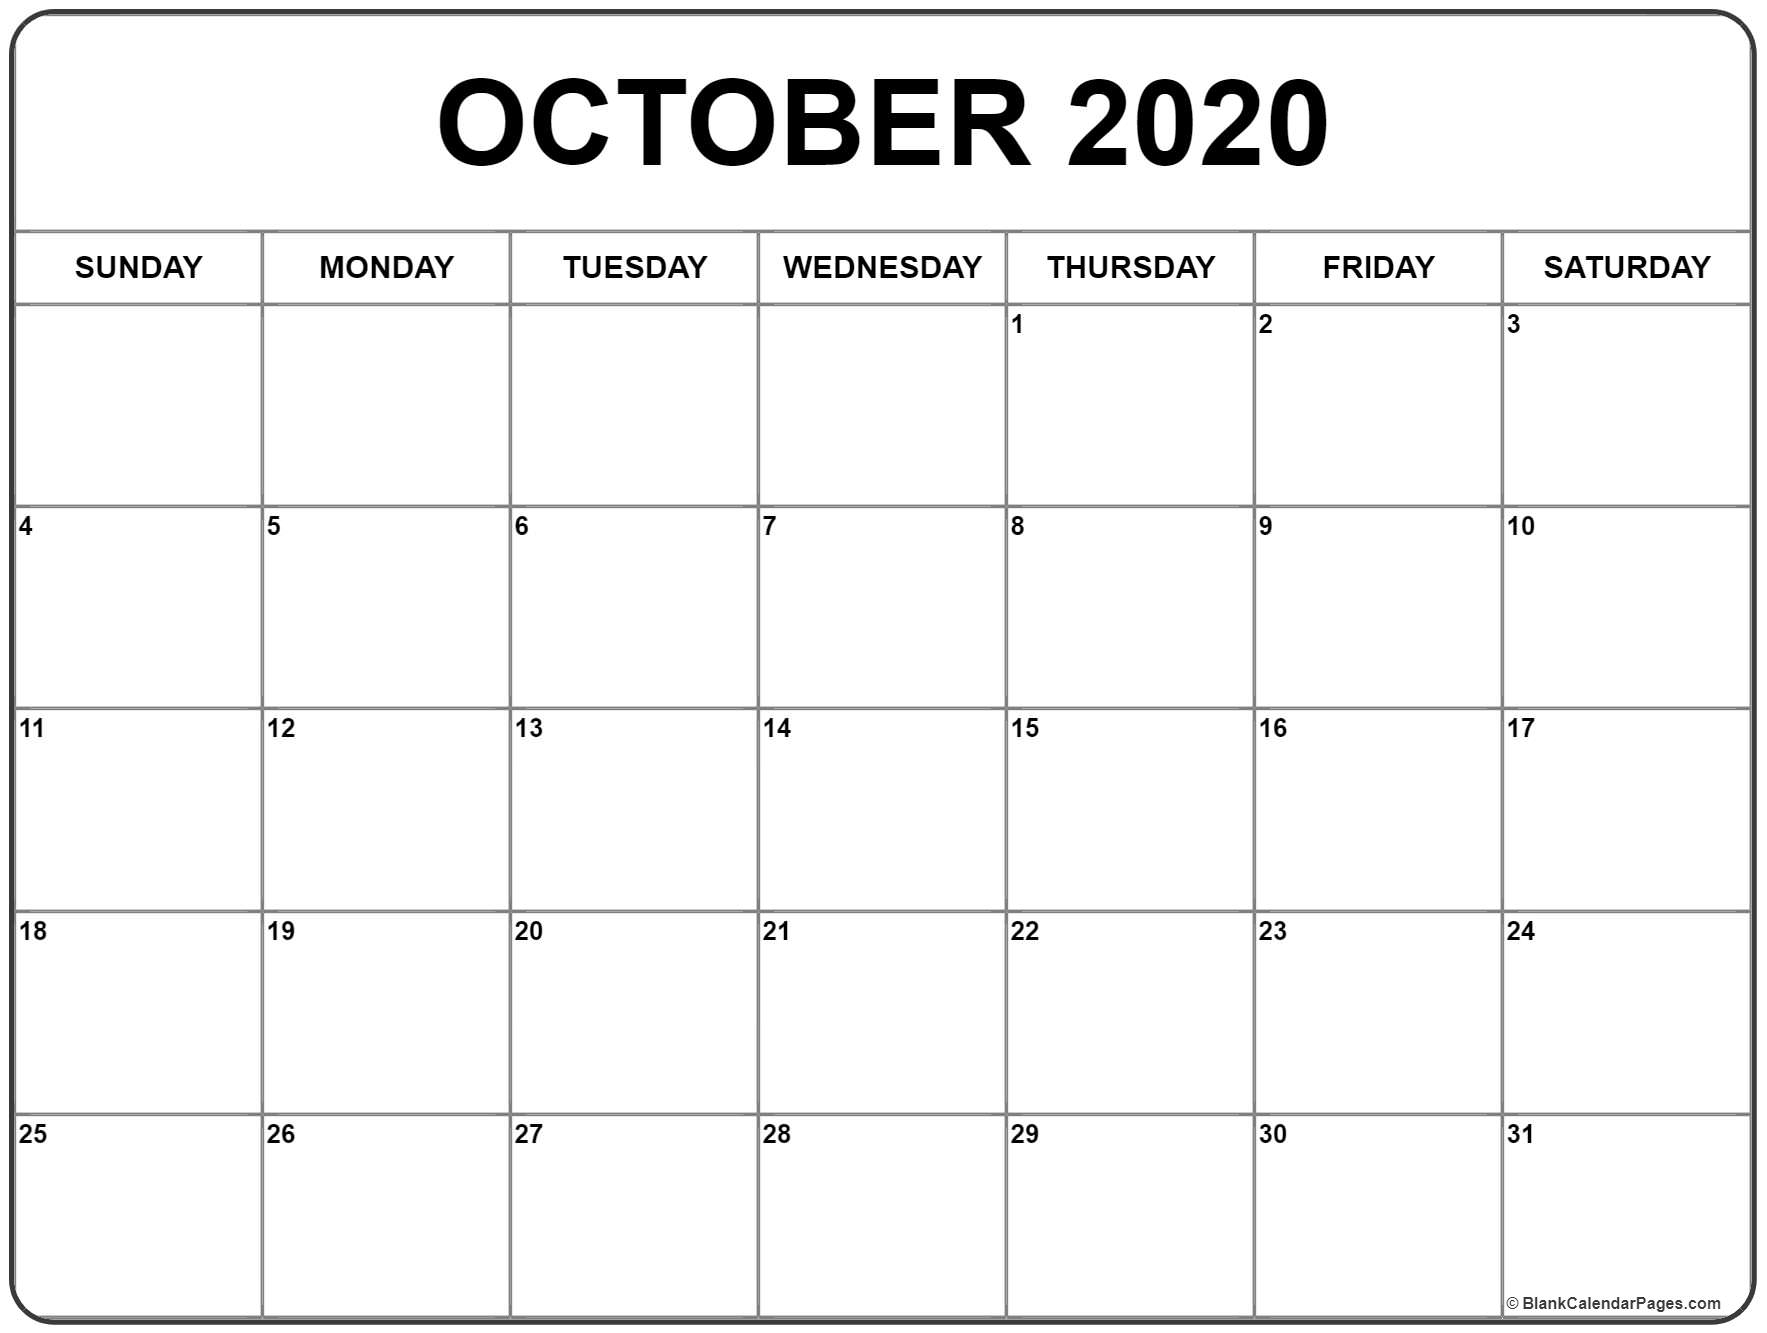 October 2020 Calendar | Free Printable Monthly Calendars